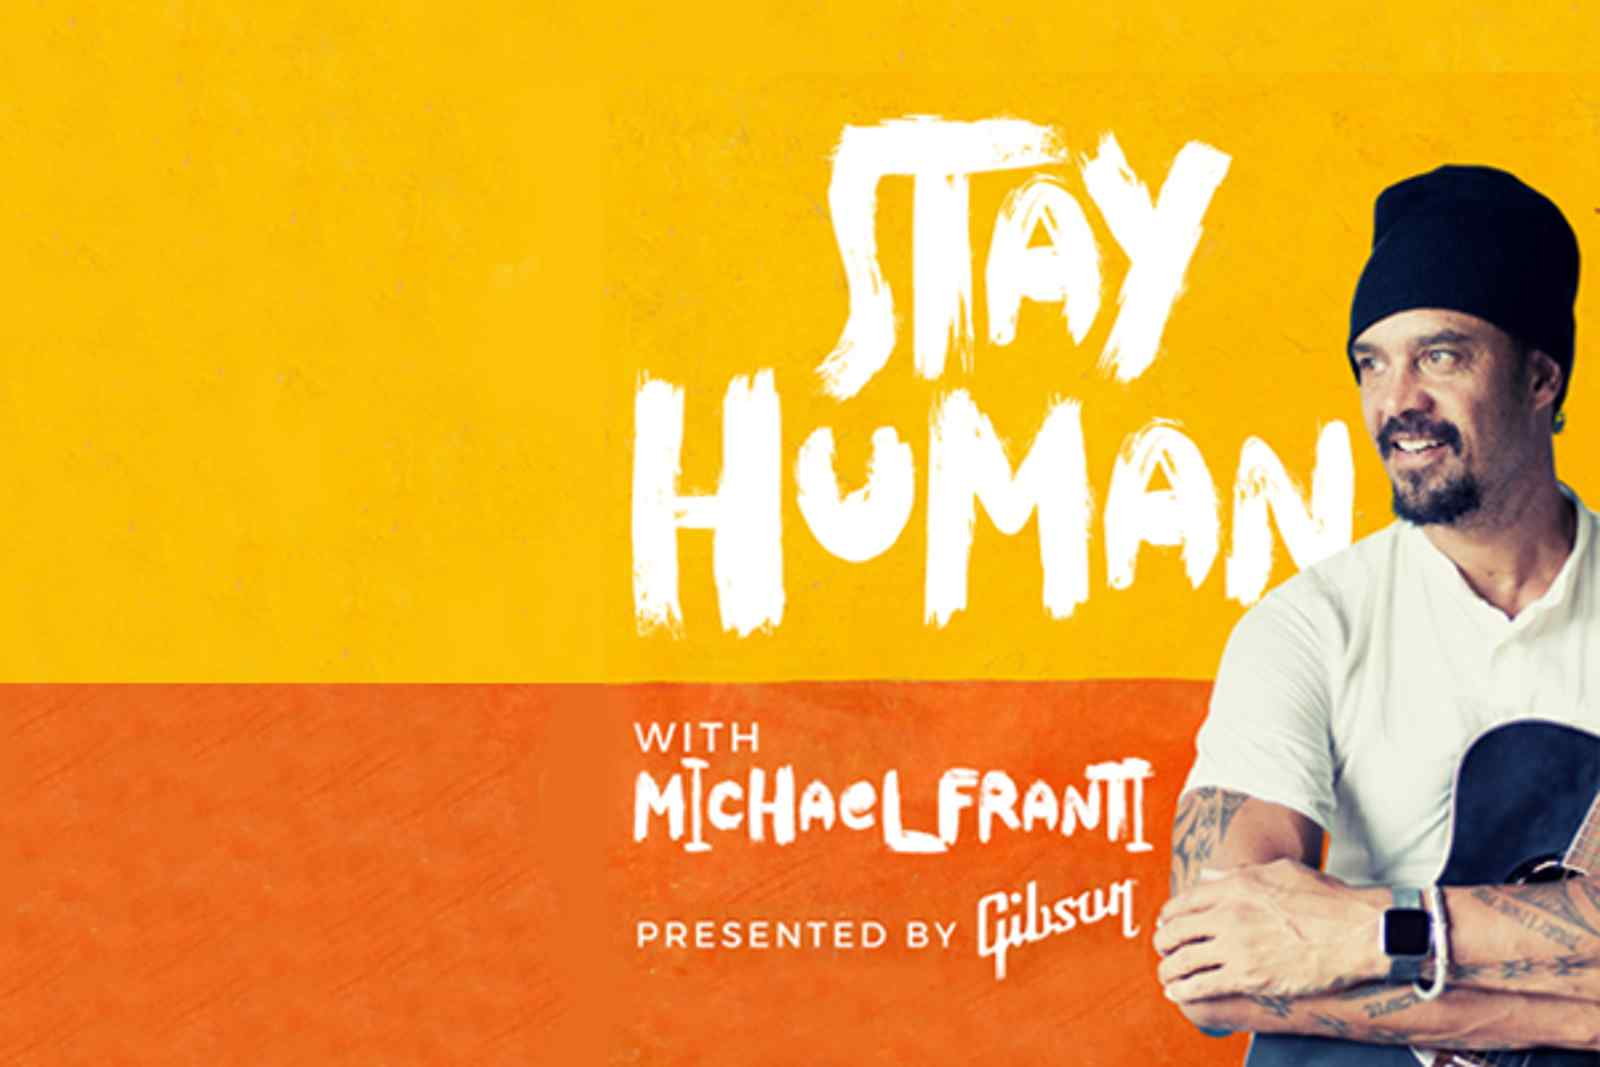 Check Out The Stay Human Podcast!